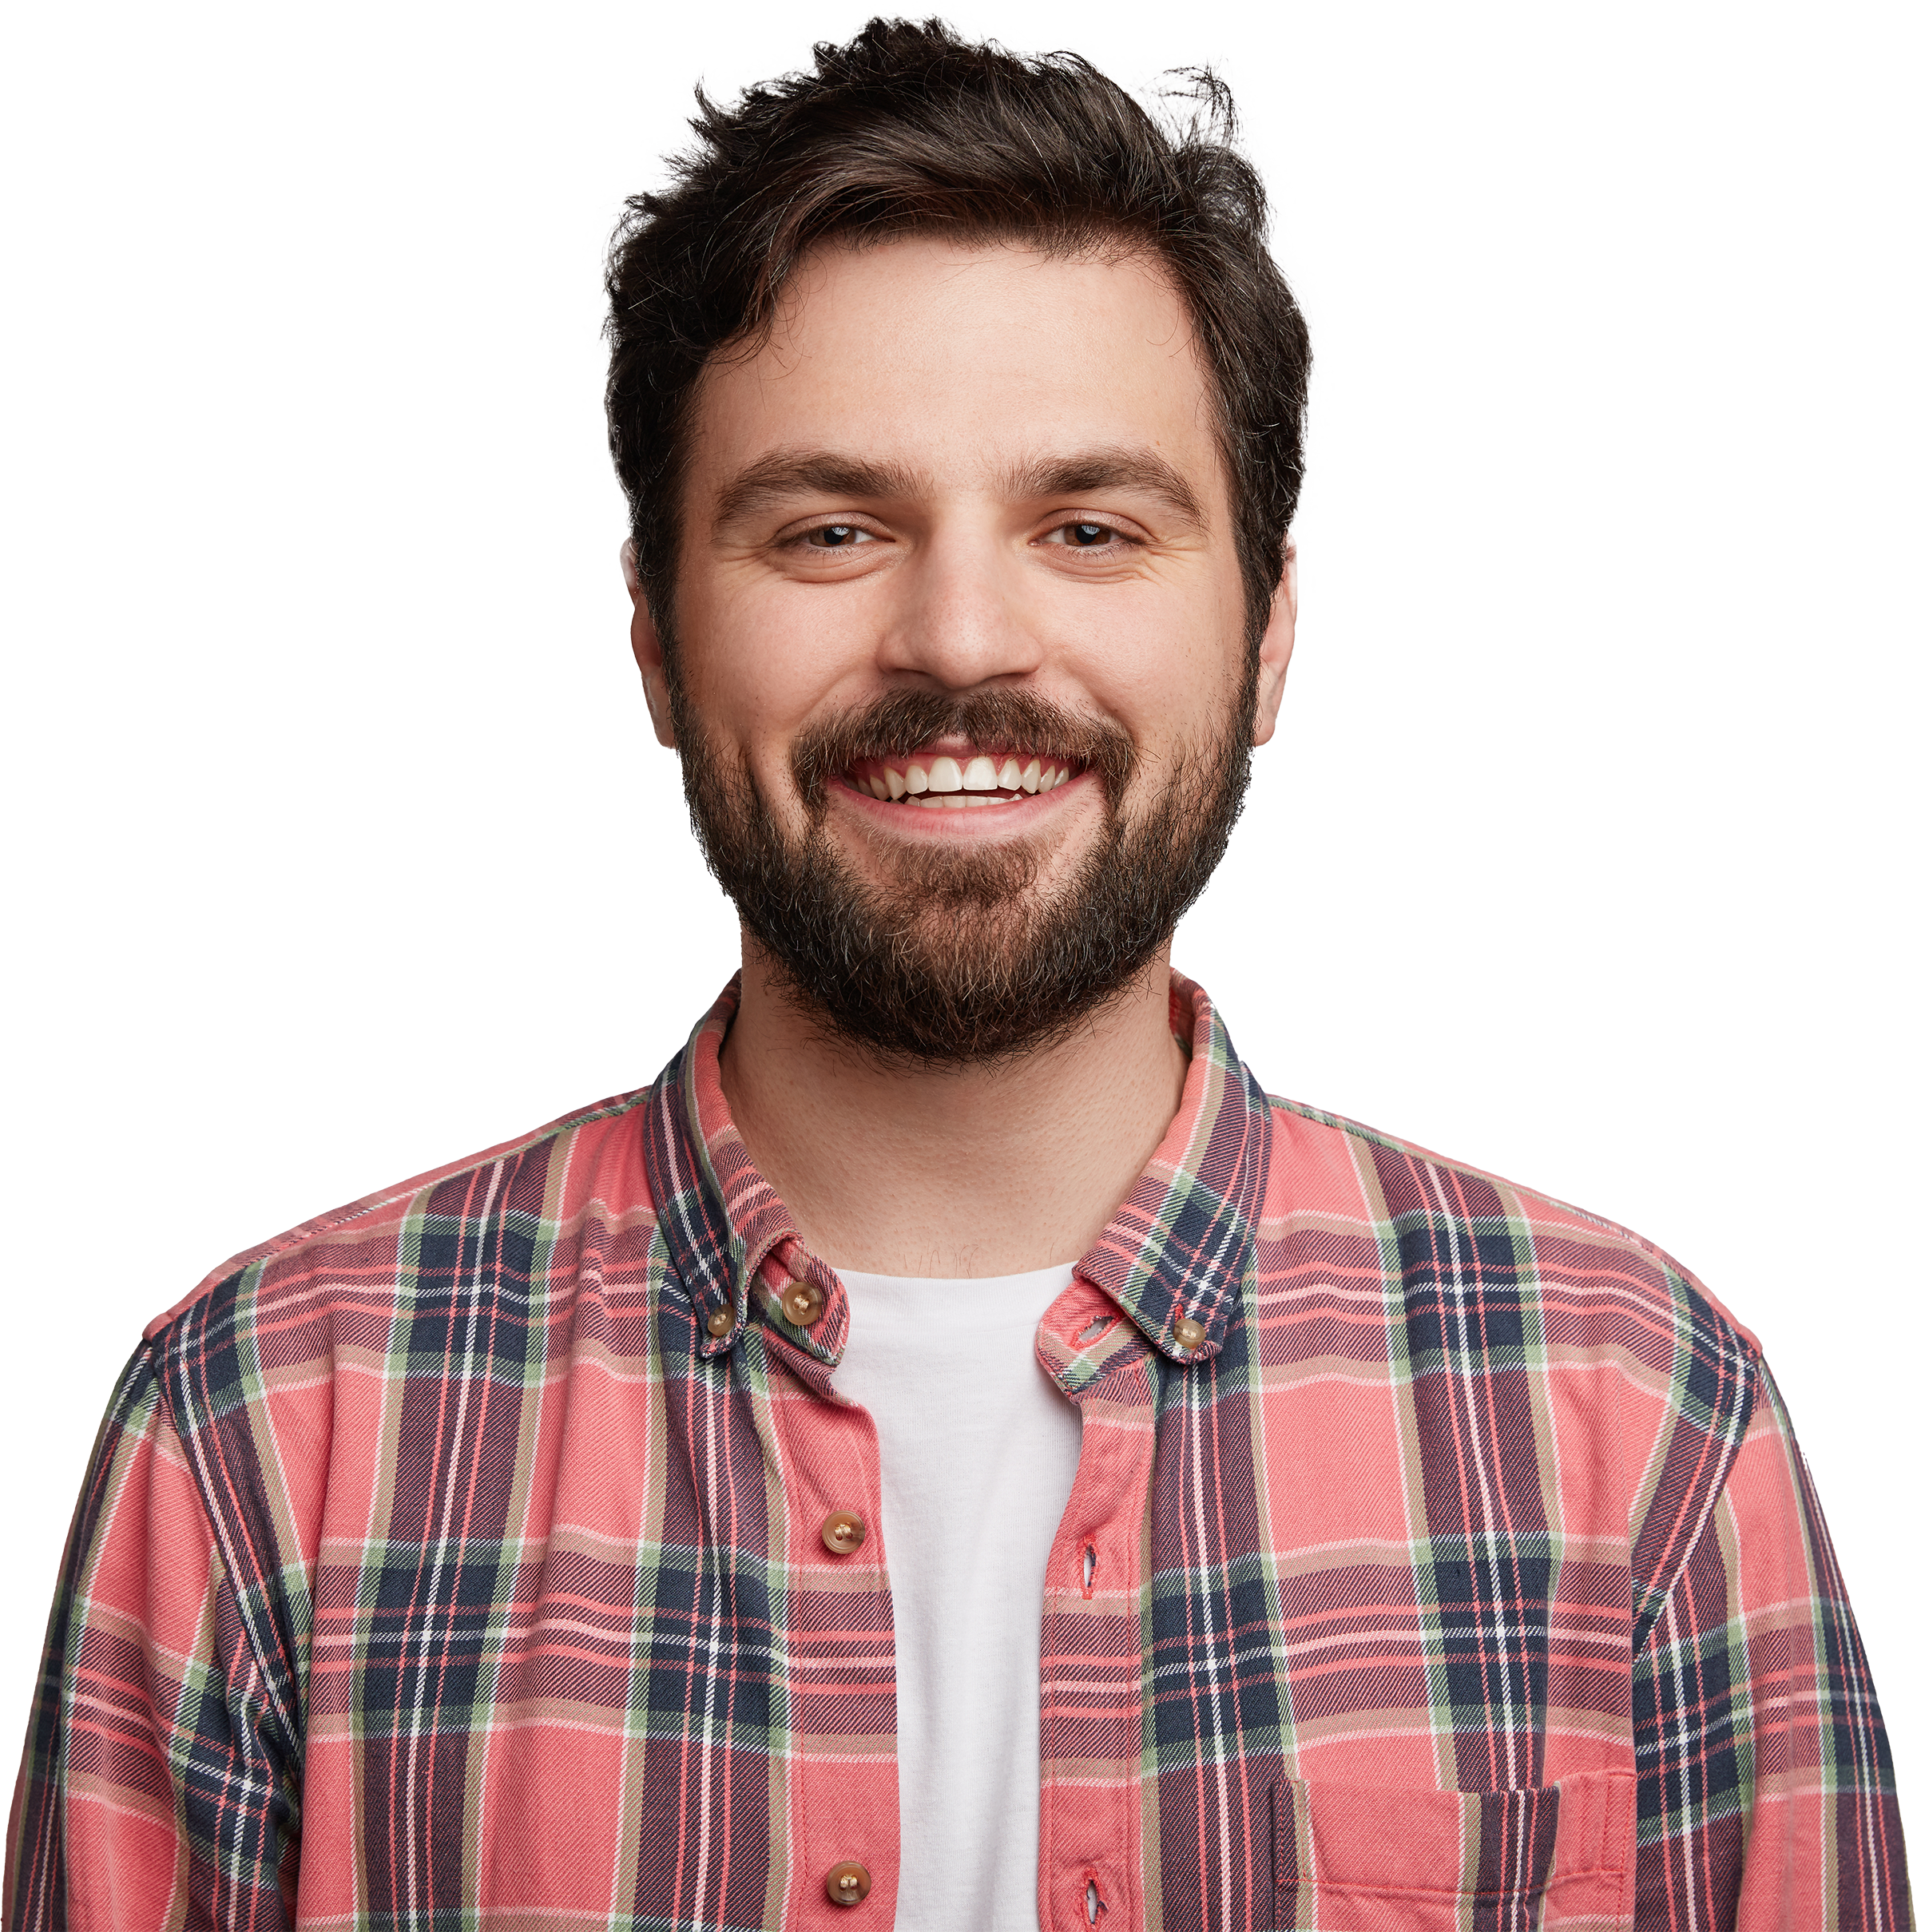 About banner - casual smiling man